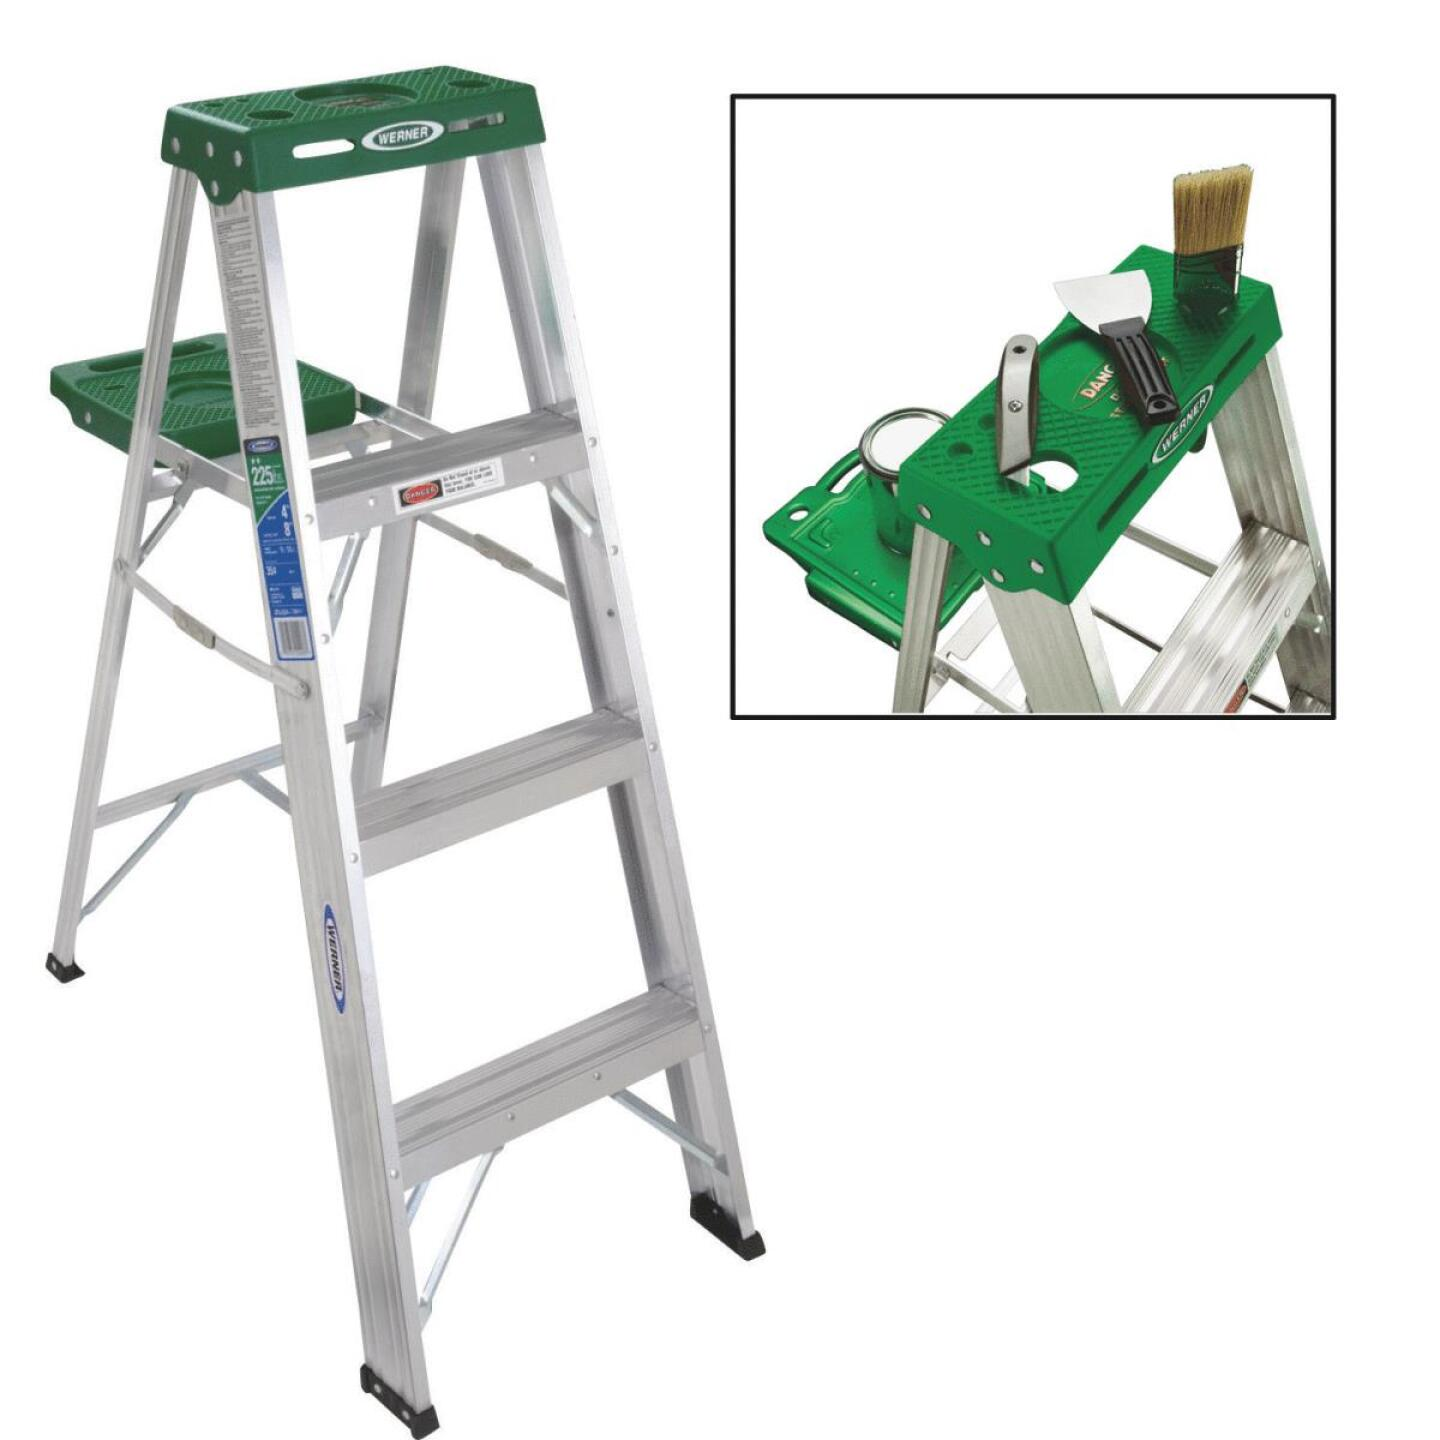 Werner 4 Ft. Aluminum Step Ladder with 225 Lb. Load Capacity Type II Ladder Rating Image 1